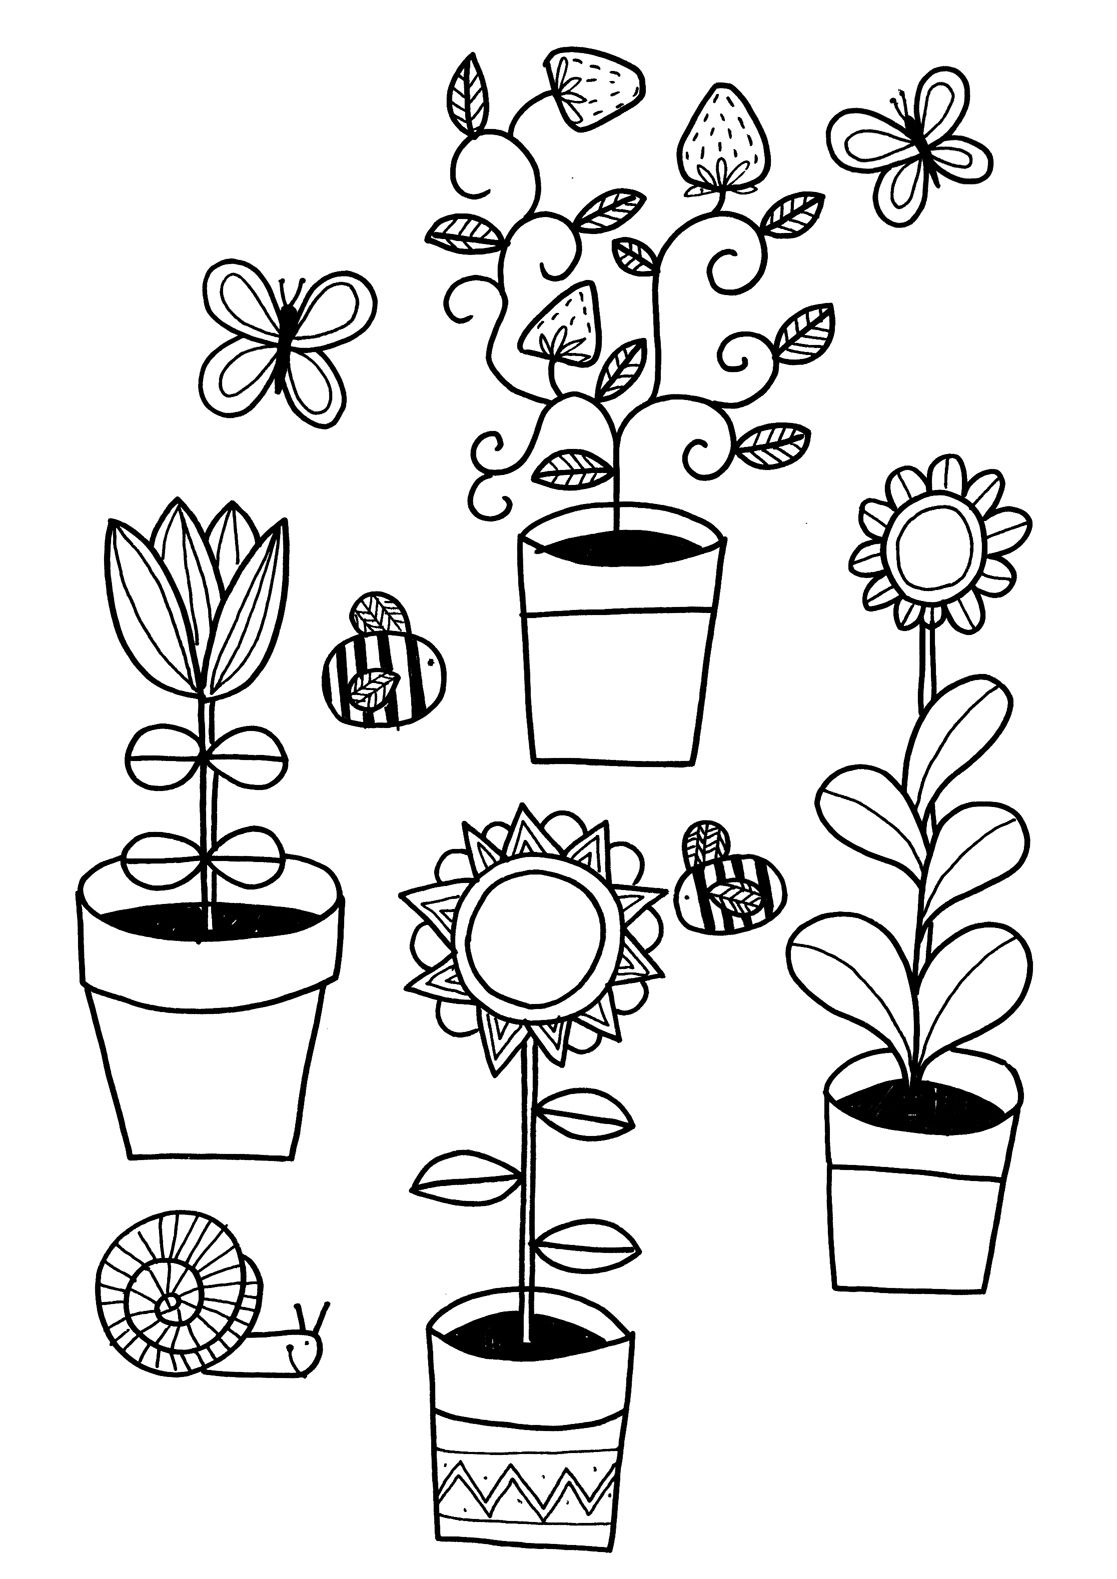 Colouring Page Garden coloring pages, Easy plants to